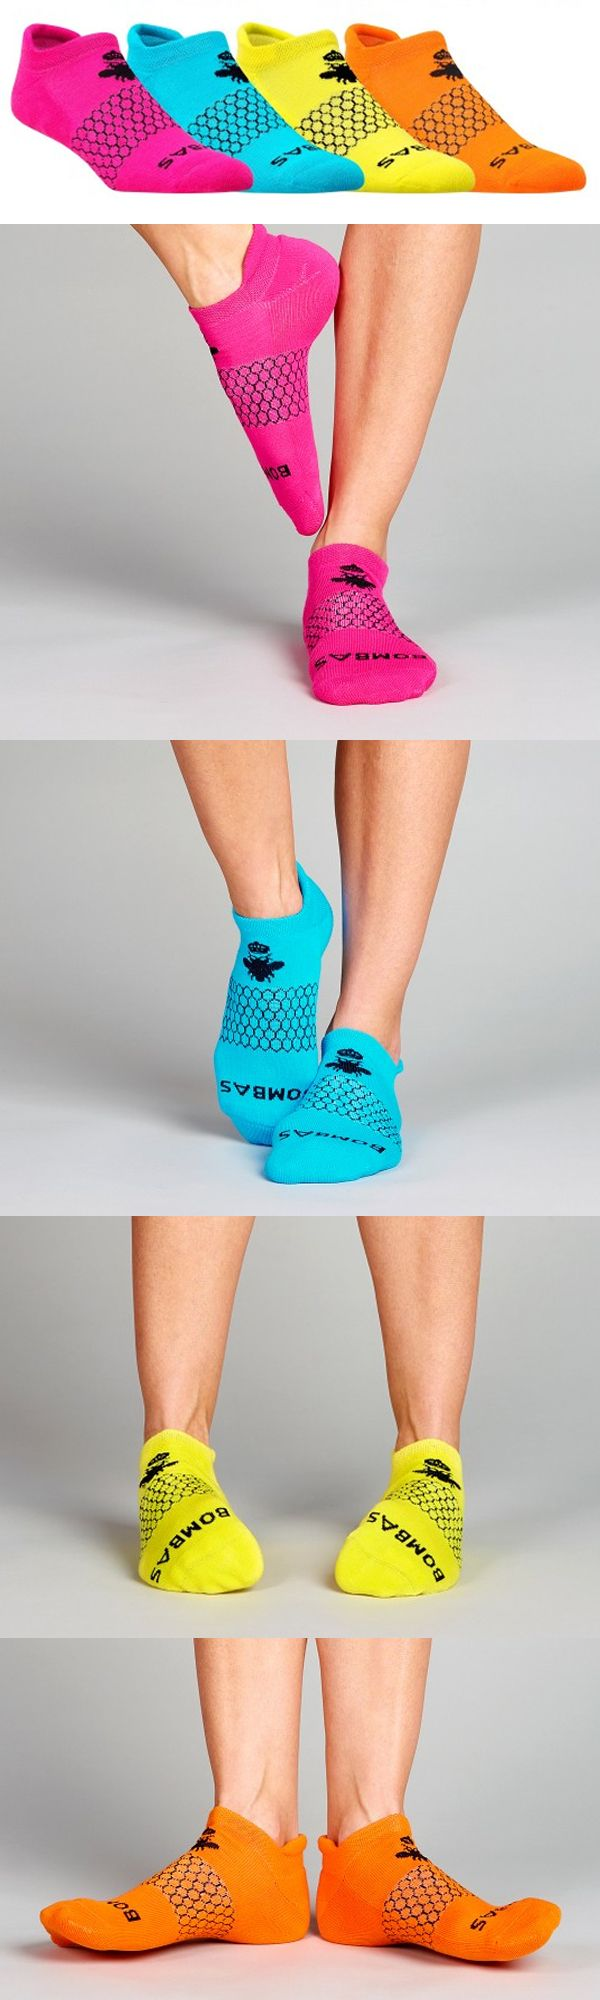 Whether you're the queen bee, a worker bee, or a busy bee, you need great socks to get you through the day. Quality materials and tested features make for the perfect socks to outfit the whole hive.  http://www.bombas.com/women?filter=5&utm_source=Pinterest&utm_medium=Social&utm_campaign=3.12P